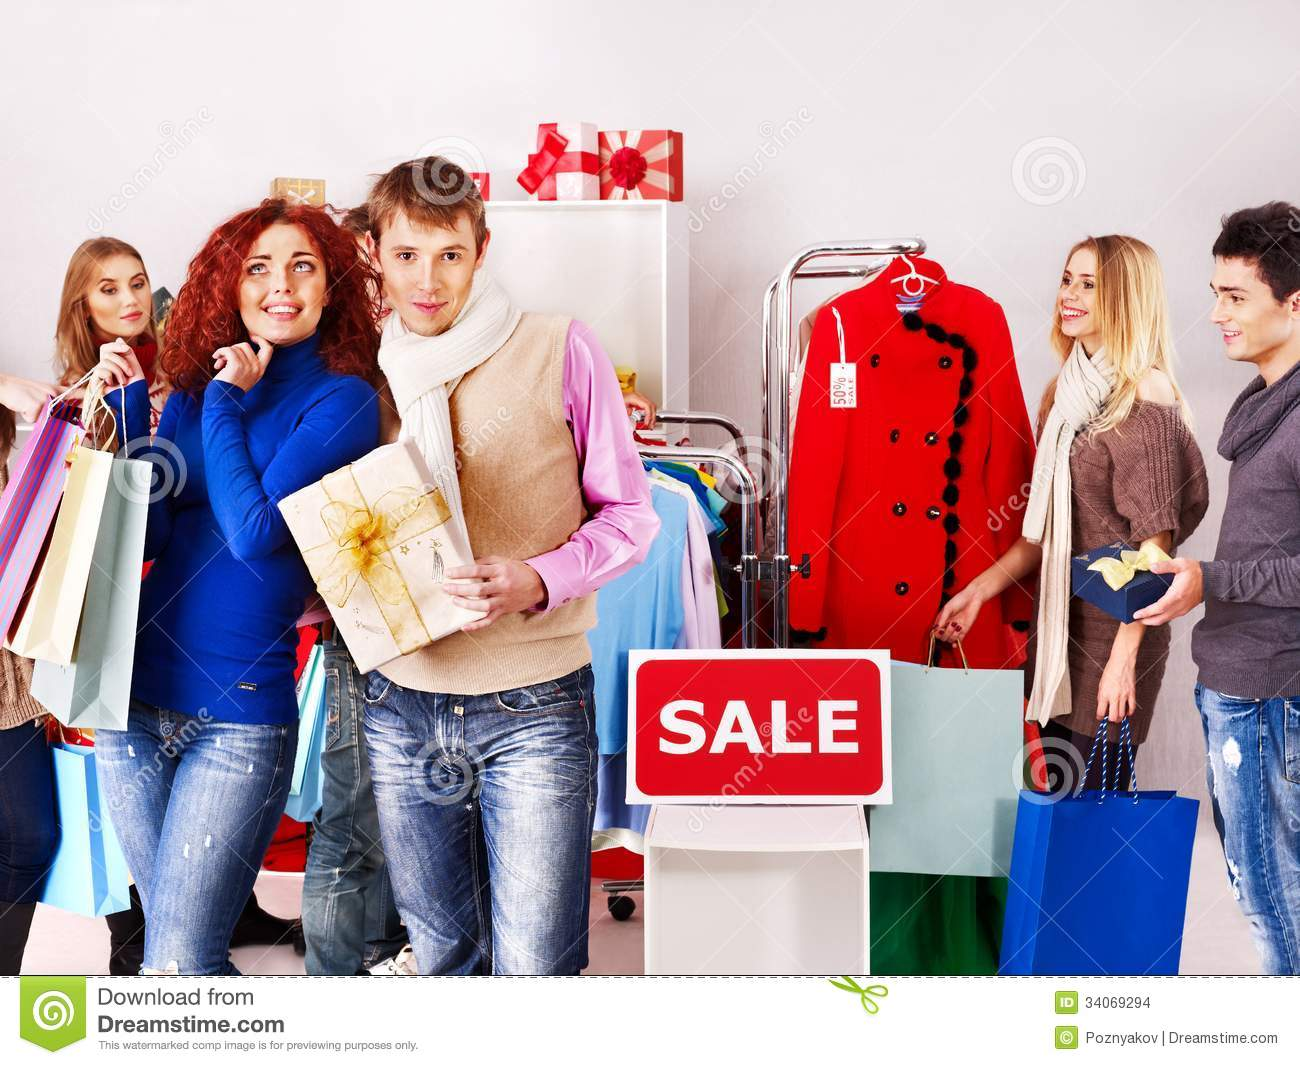 women-christmas-sales-group-people-clothing-store-34069294.jpg